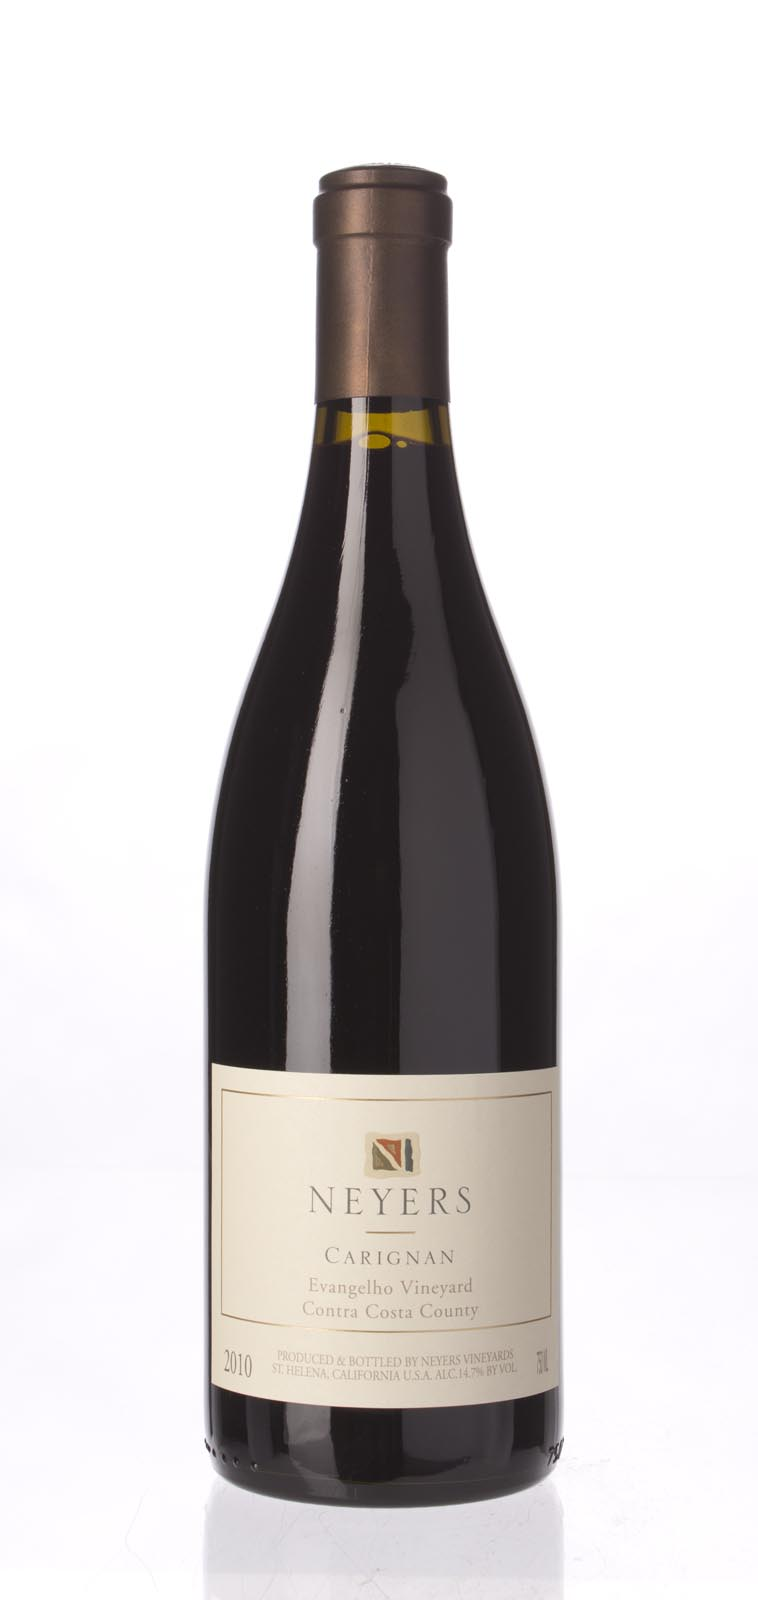 Neyers Carignan Evangelho Vineyard 2010, 750ml (WS93) from The BPW - Merchants of rare and fine wines.